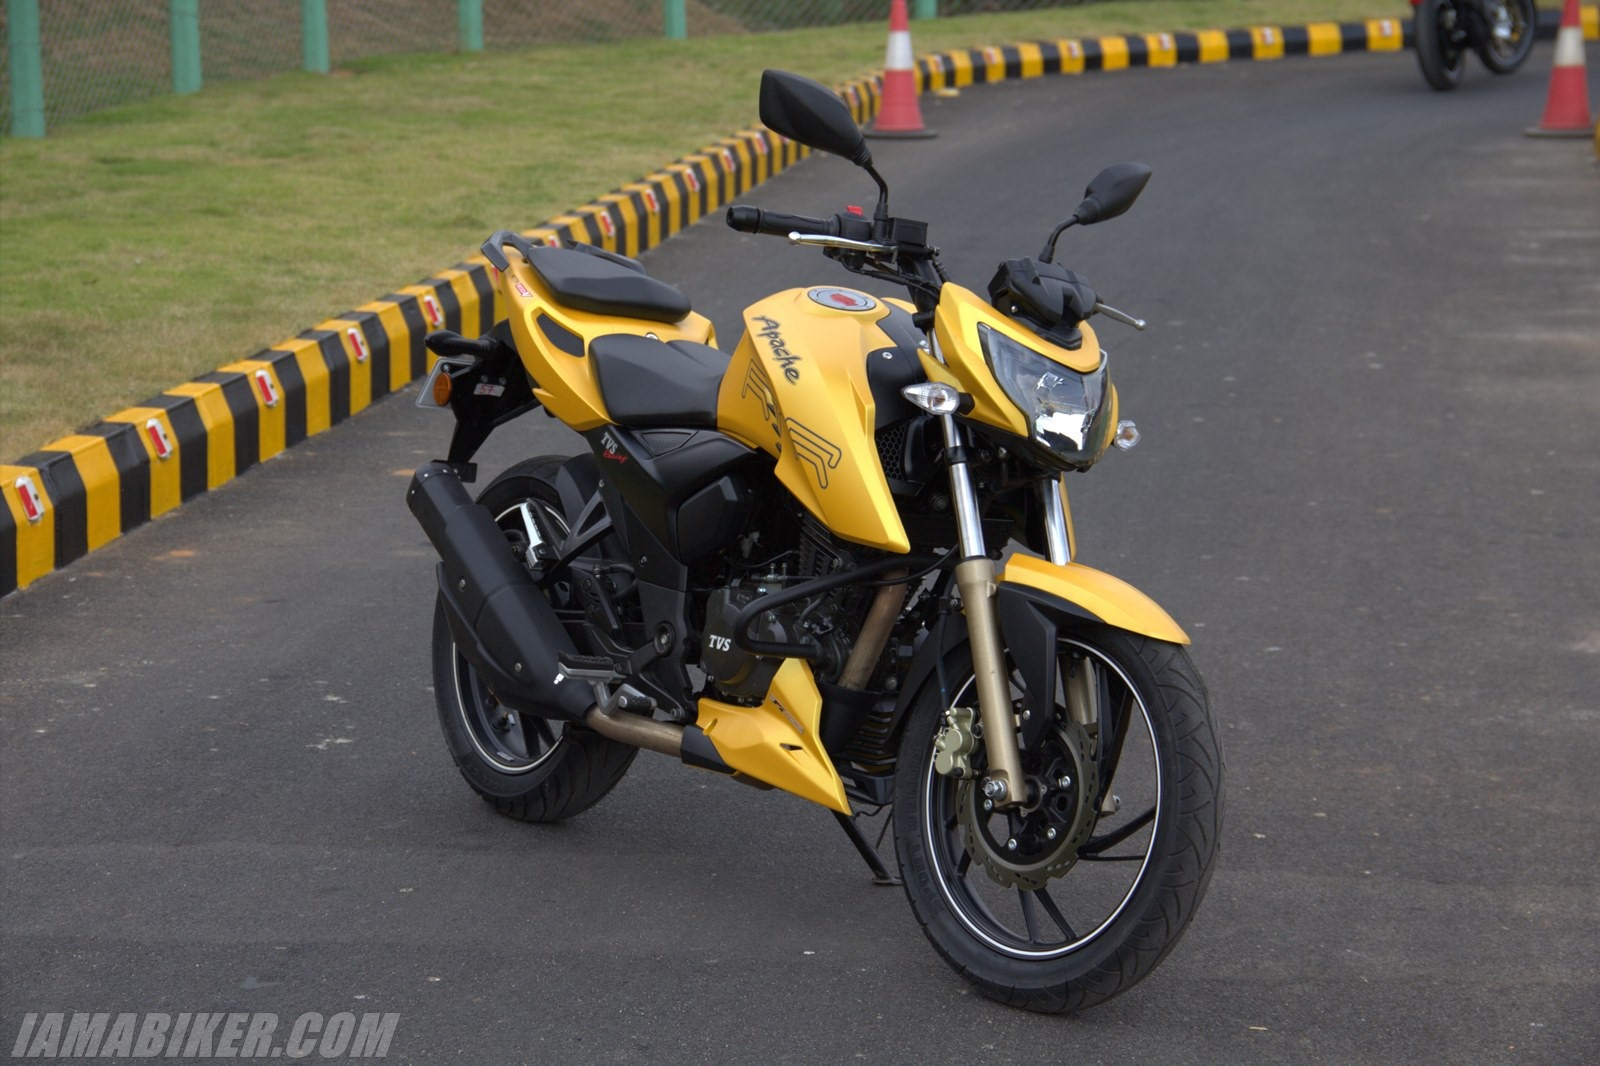 TVS Apache RTR 200 yellow colour option